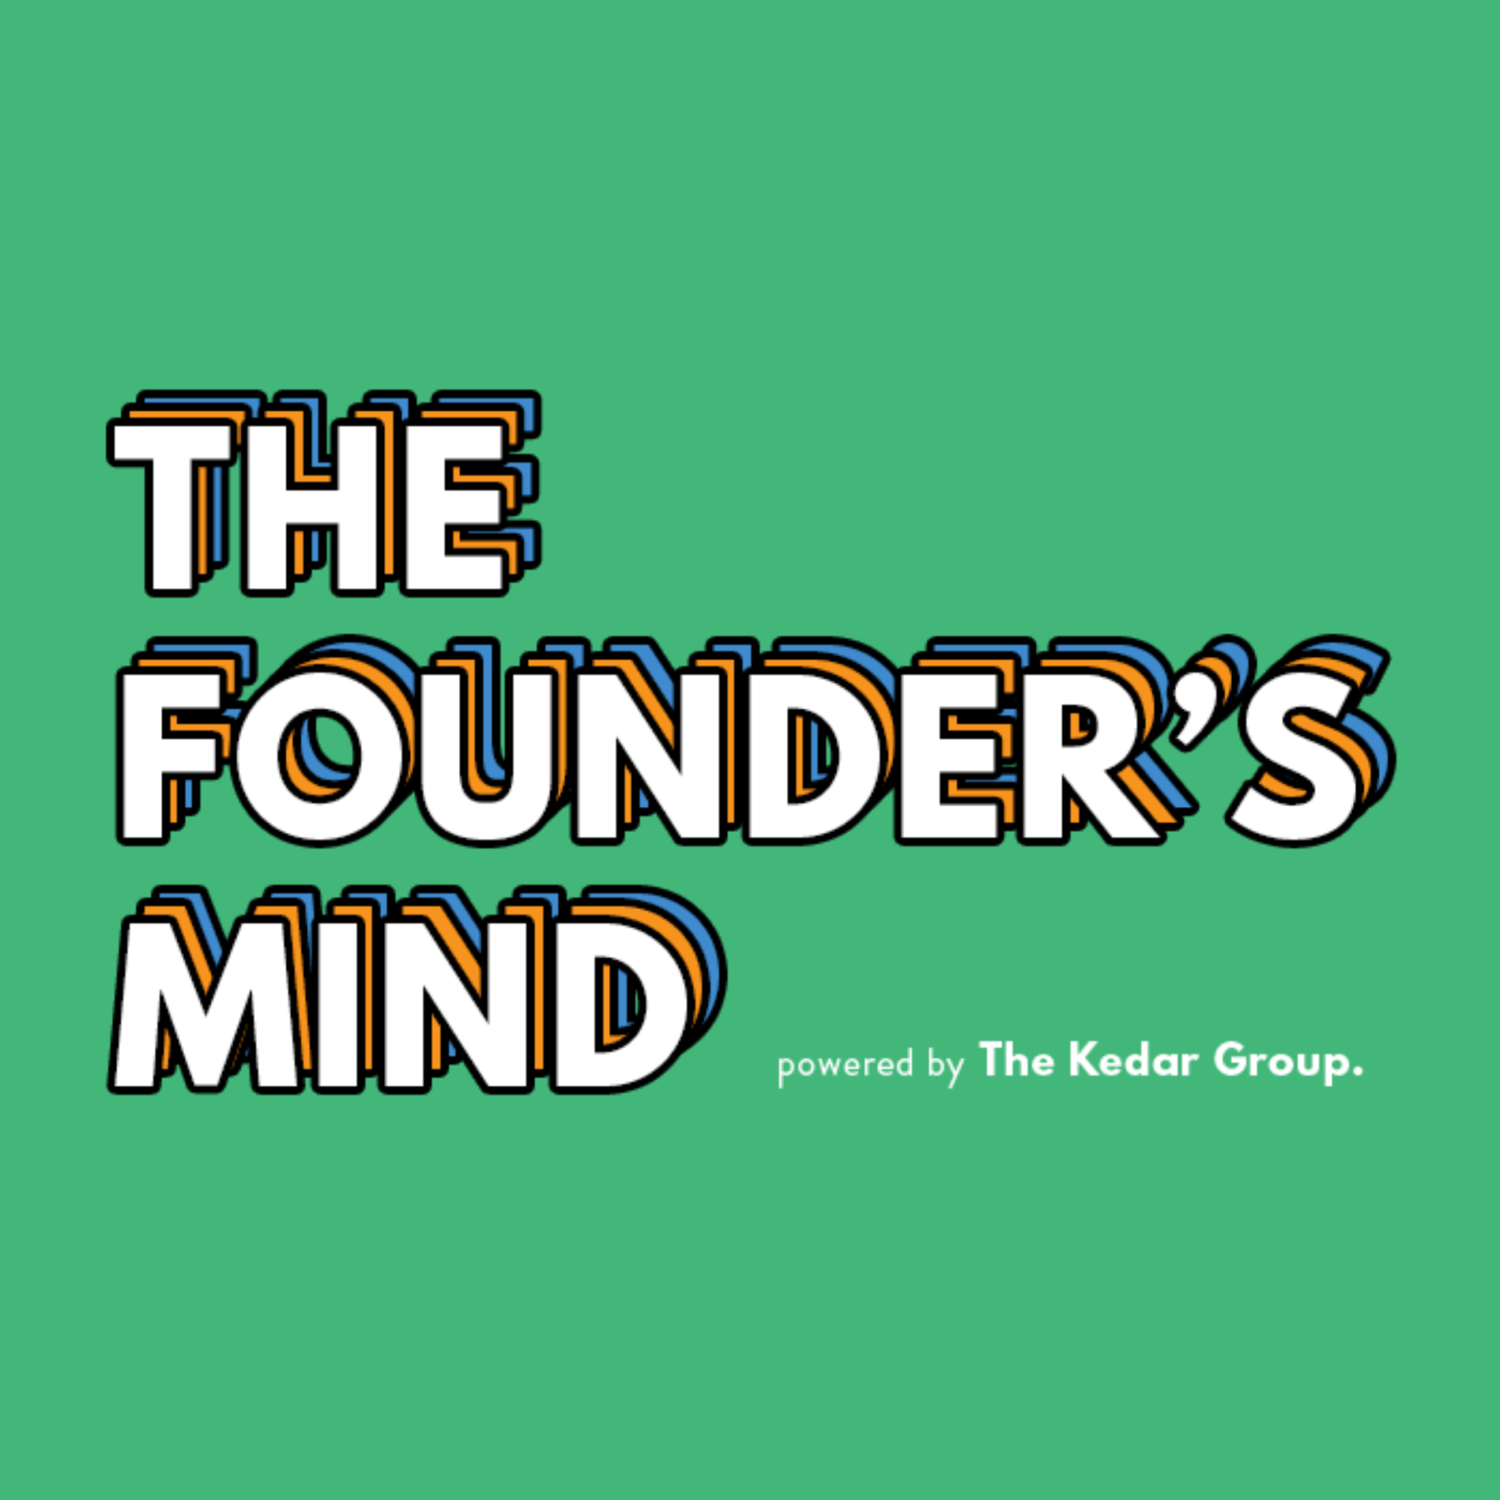 The Founder's Mind